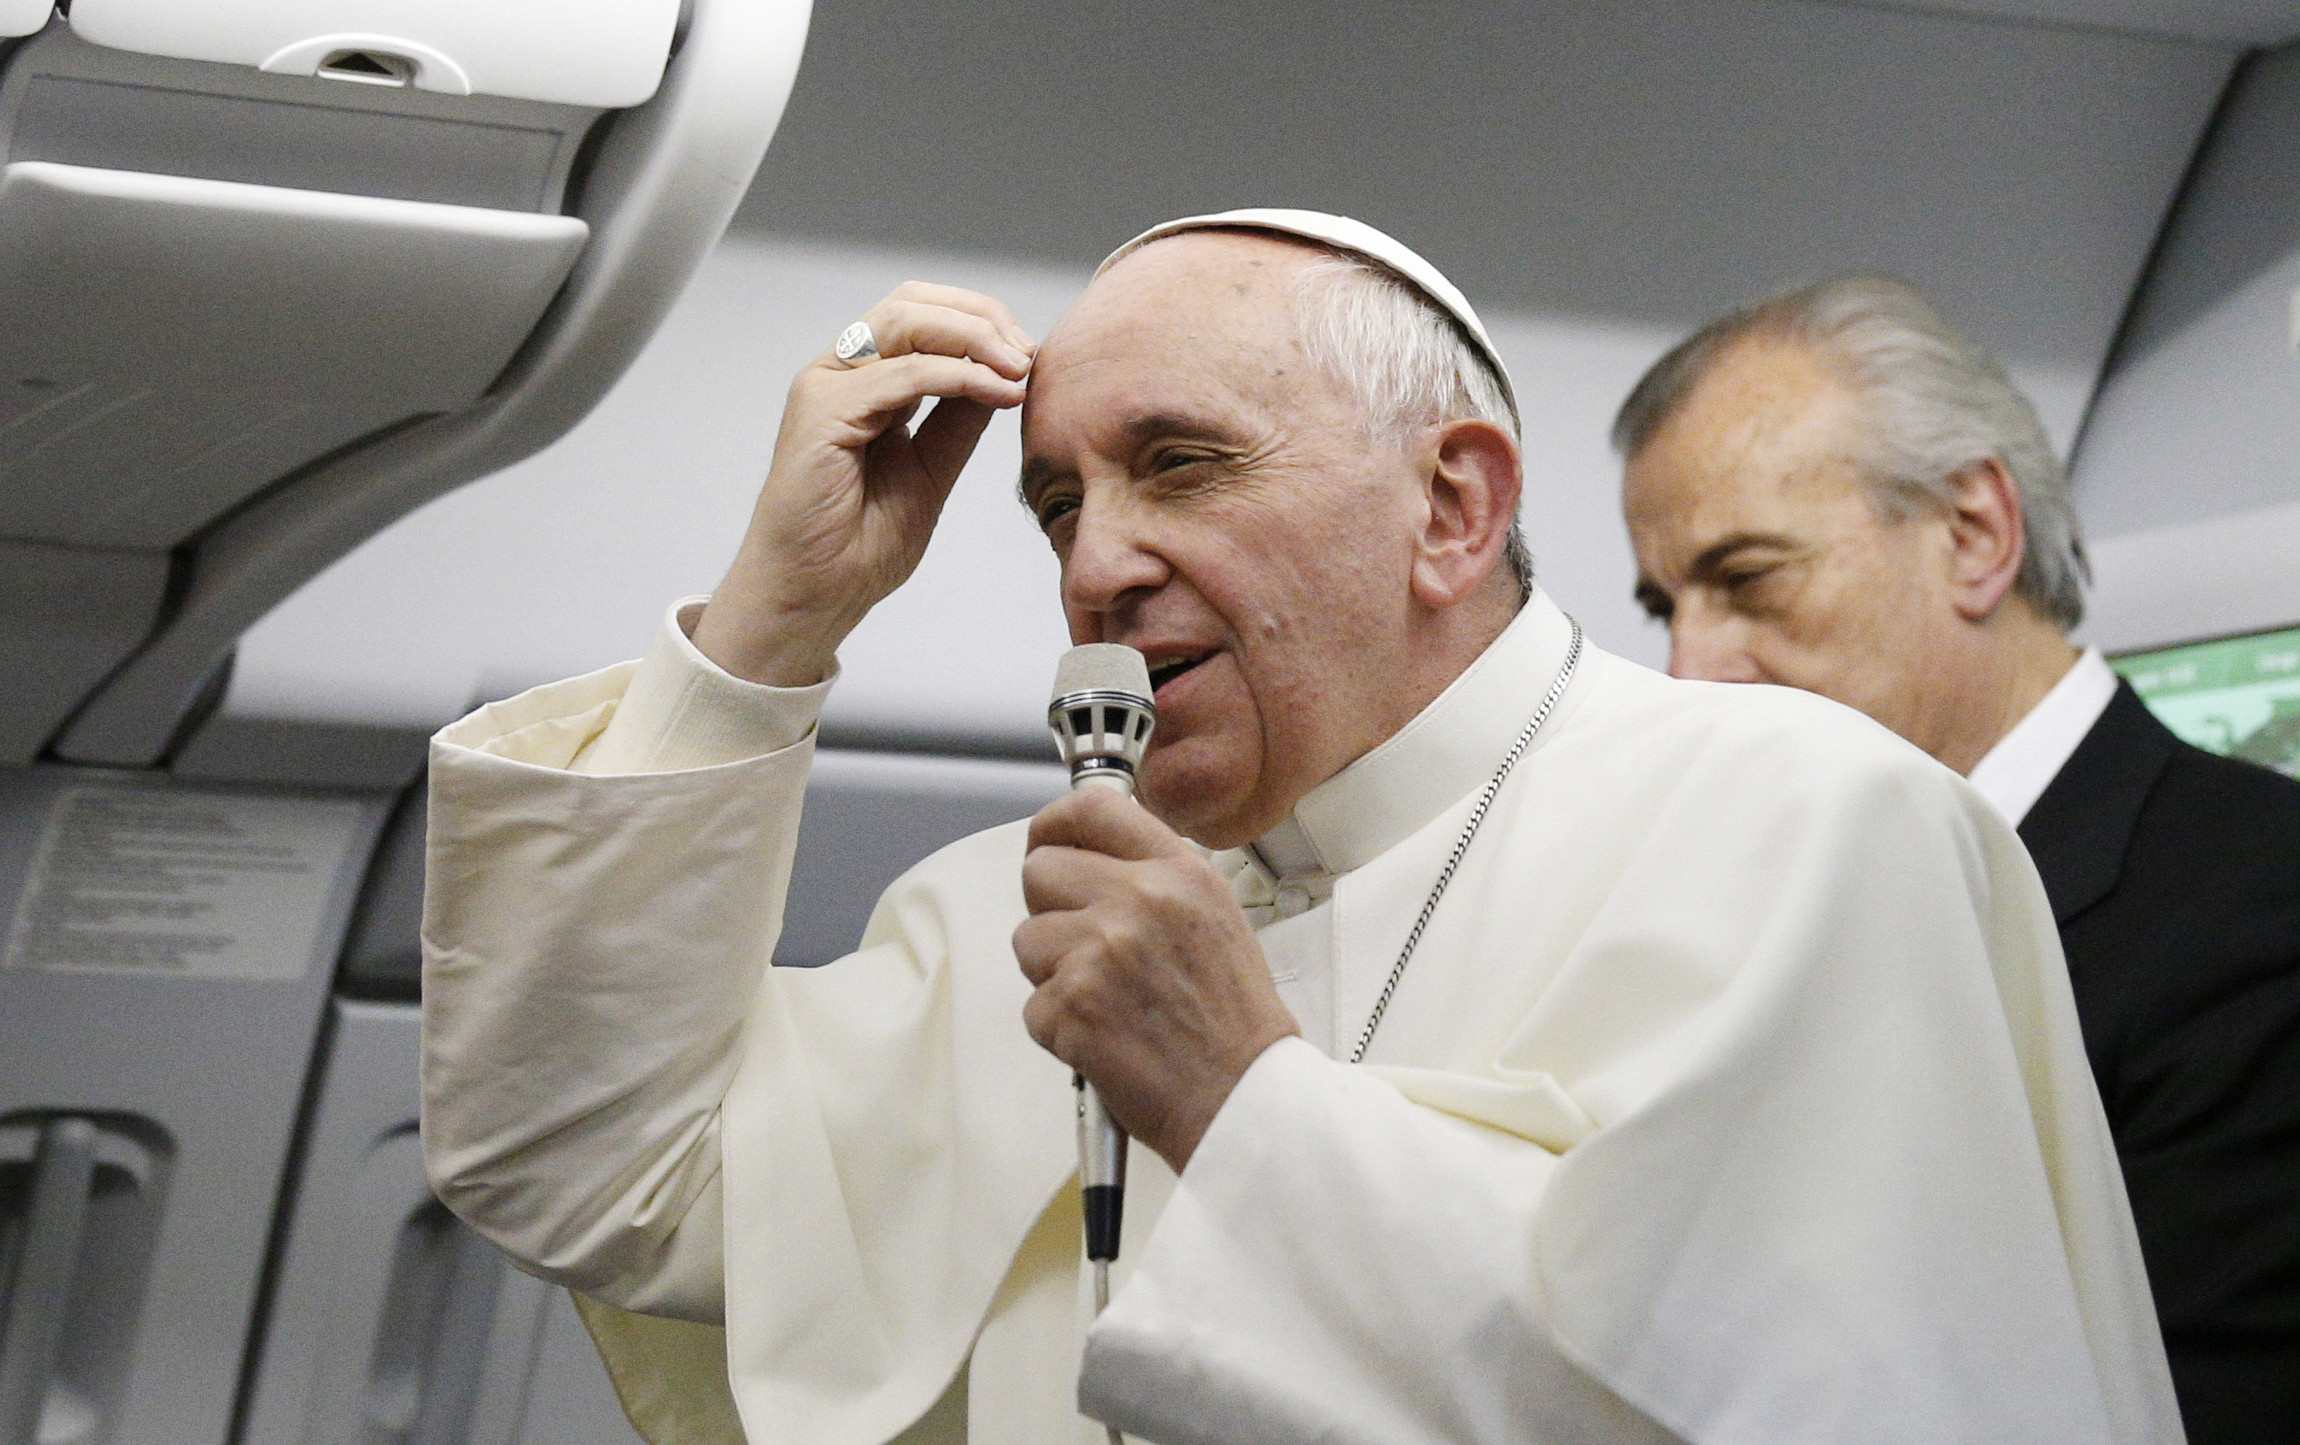 """Pope Francis speaks to the media aboard the papal flight from Rio de Janeiro to Rome July 28. When the pope told reporters, """"Who am I to judge"""" a homosexual person, he was emphasizing a part of Catholic teaching often overlooked by the media and misunderstood by many people. (CNS photo/Paul Haring) (July 31, 2013) See POPE-HOMOSEXUALITY July 31, 2013."""